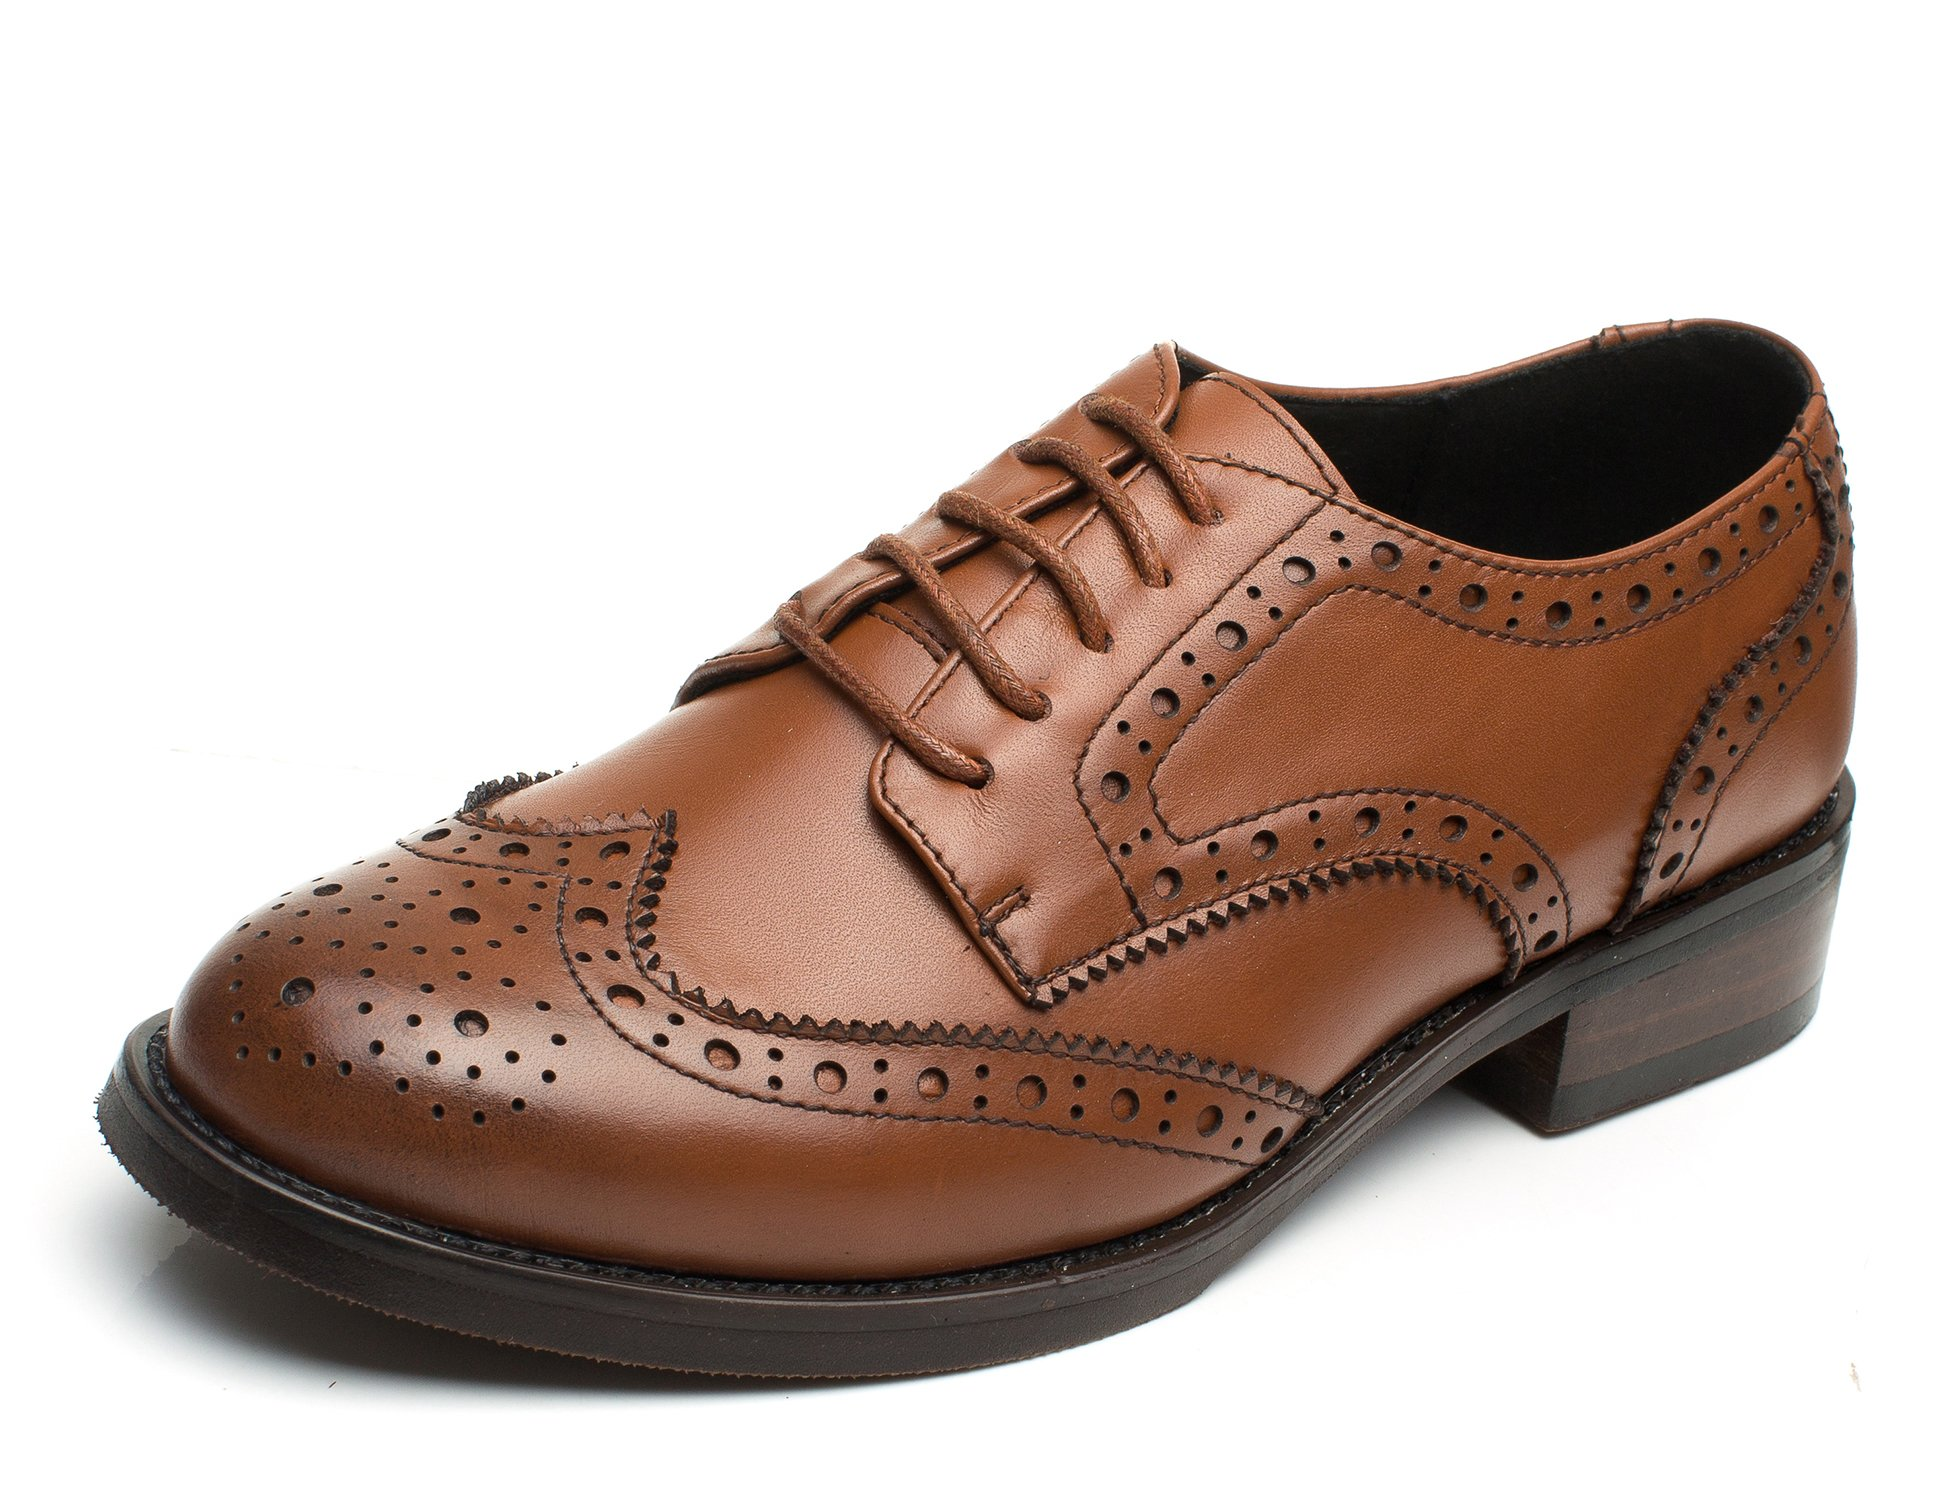 dd78ba4ec43 U-lite Women s Perforated Lace-up Wingtip Leather Flat Oxfords Vintage  Oxford Shoes Brogues